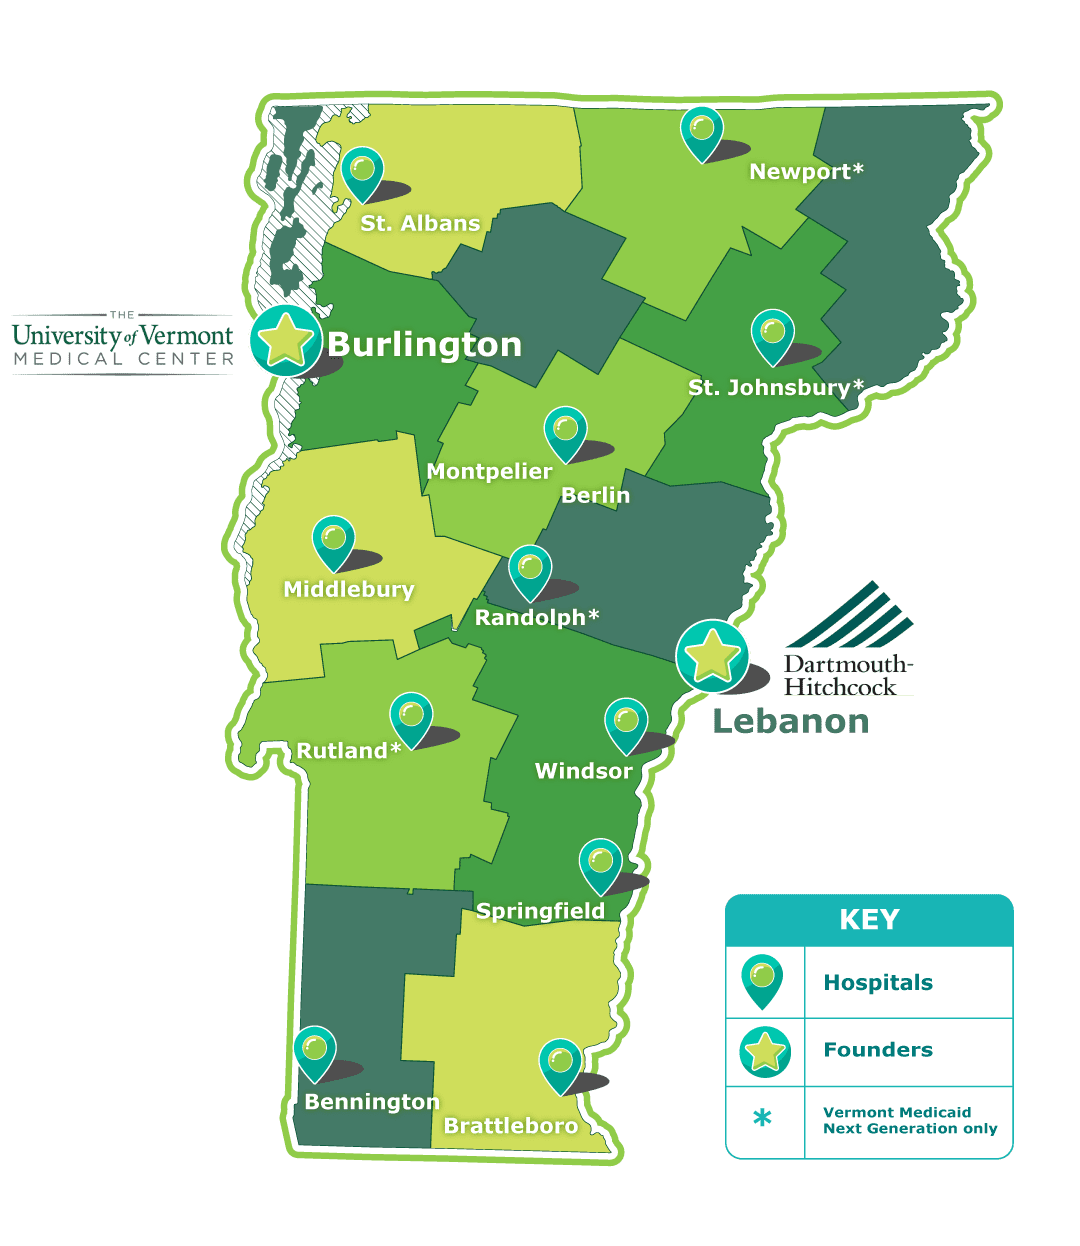 A visual map of the state of Vermont segmented into its counties, showing the location of participating hospitals as well as the two founding hospitals - University of Vermont Medical Center in Burlington, Vermont and Dartmouth-Hitchcock in Lebanon, New Hampshire.